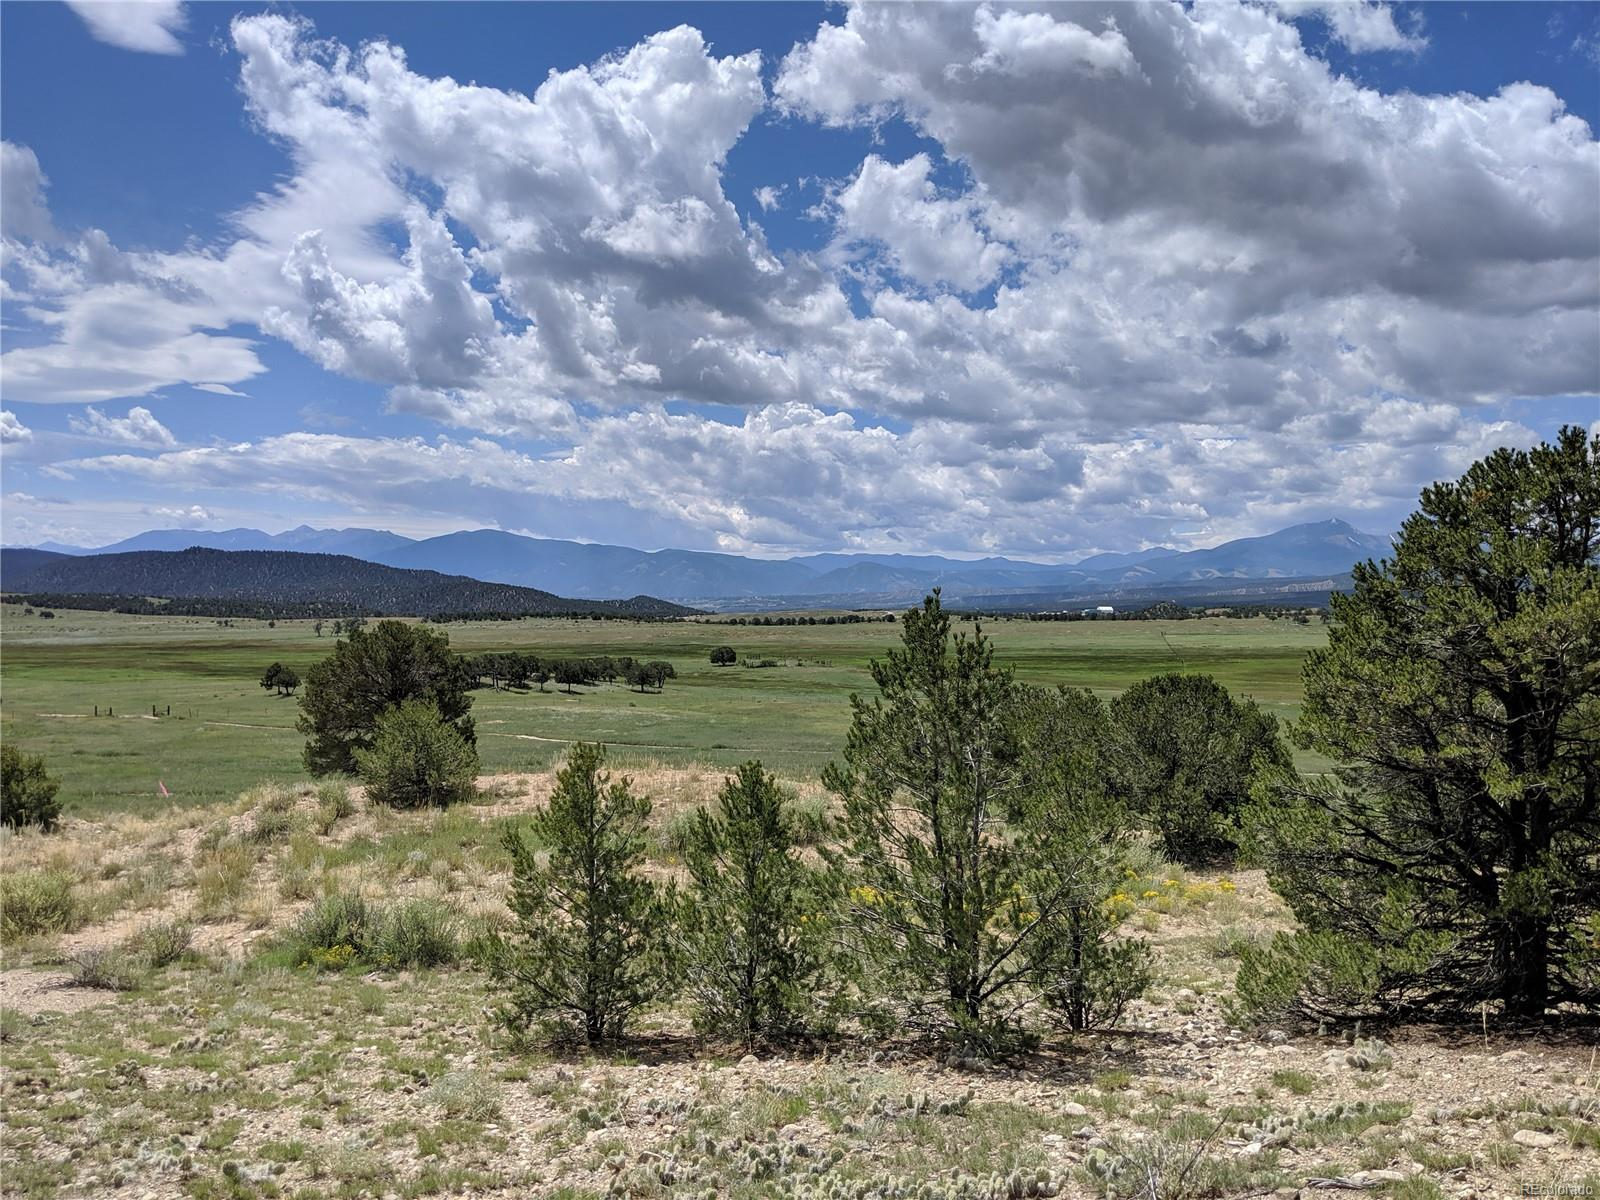 Lot 21, Nathrop, CO 81236 - Nathrop, CO real estate listing